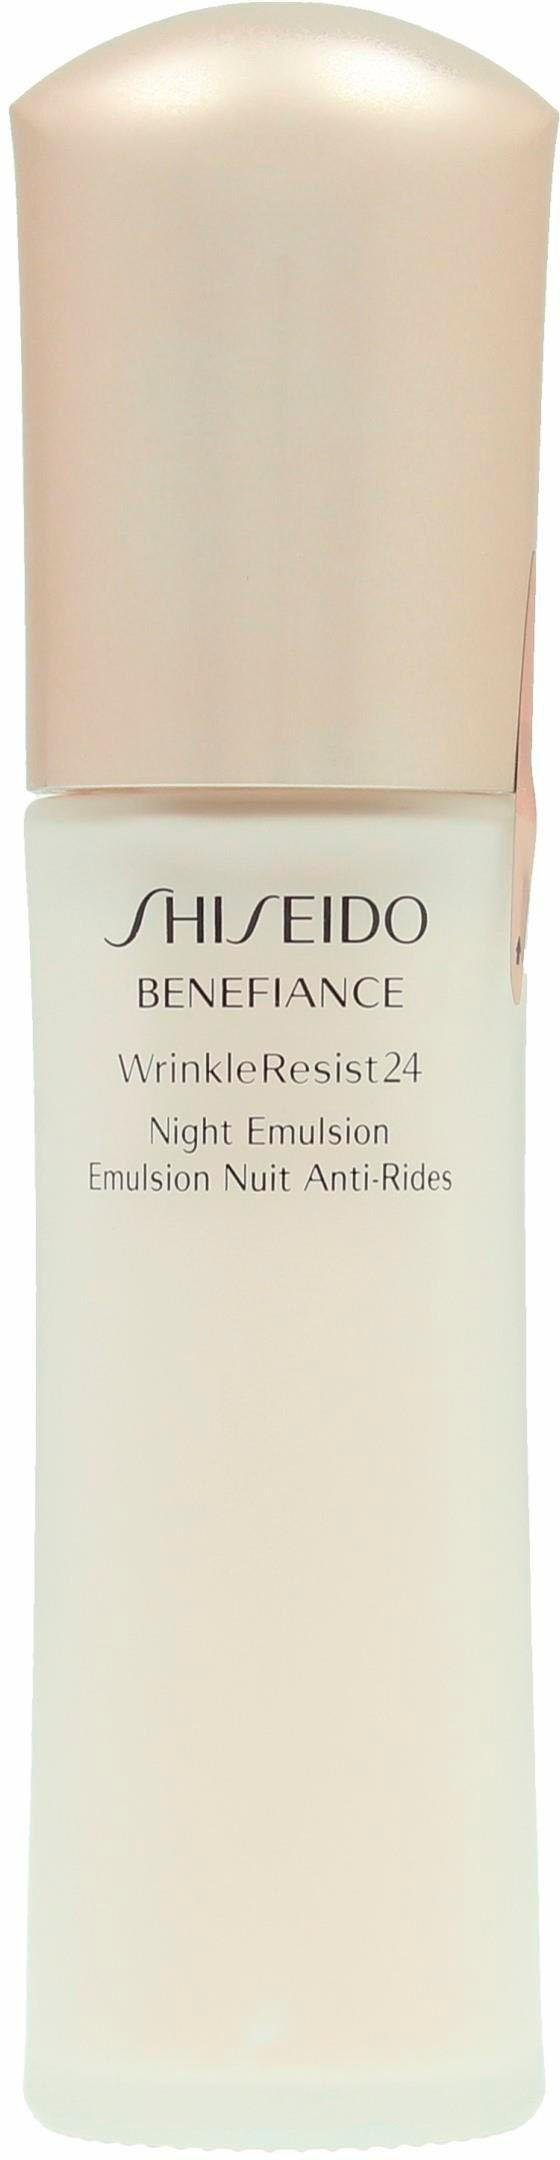 Shiseido, »Benefiance WrinkleResist24 Night Emulsion«, Nachtpflege